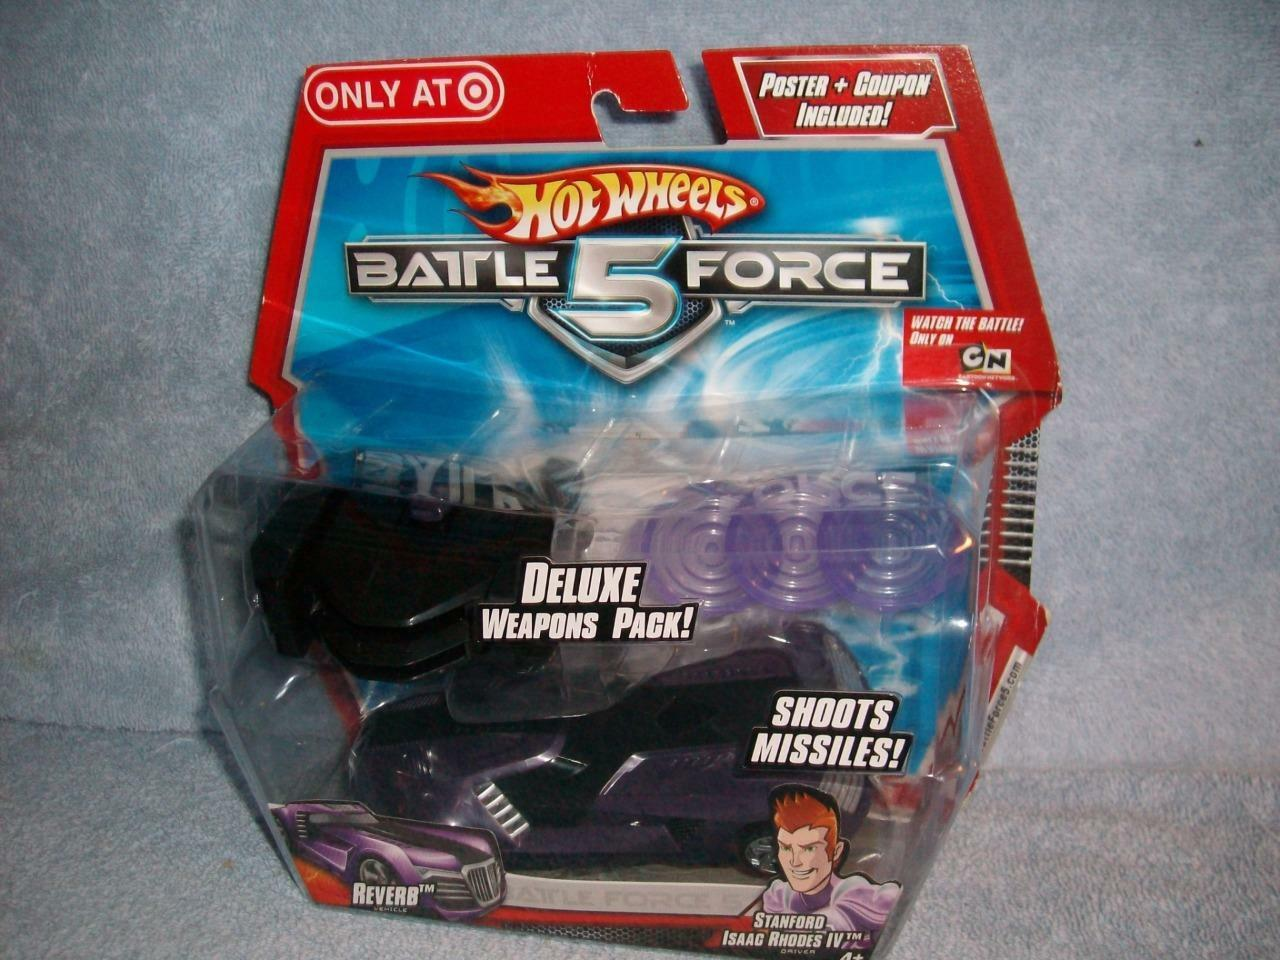 Reverb Stanford Isaac Rhodes IV Hot Wheels Battle Force 5 Exclusive Weapons 2009